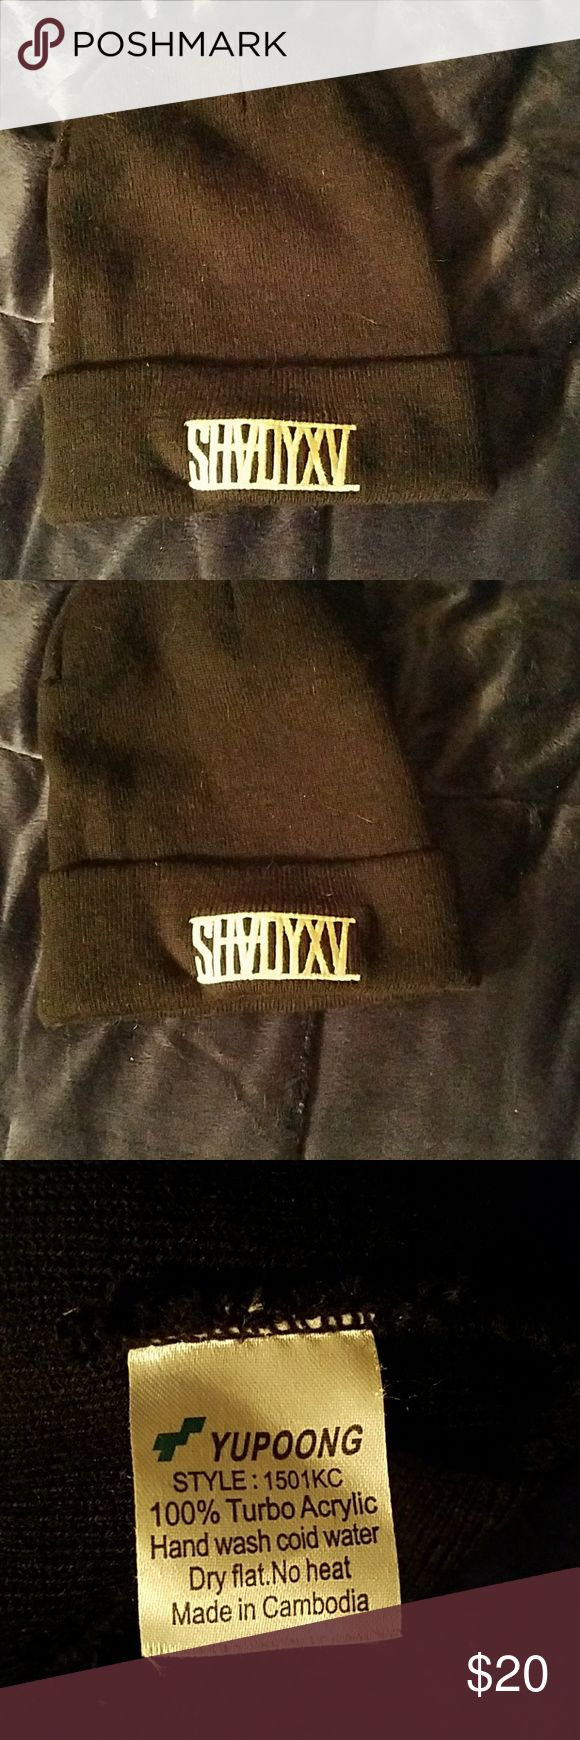 Eminem winter hat Brand new. Never worn. For men or women. Accessories Hats